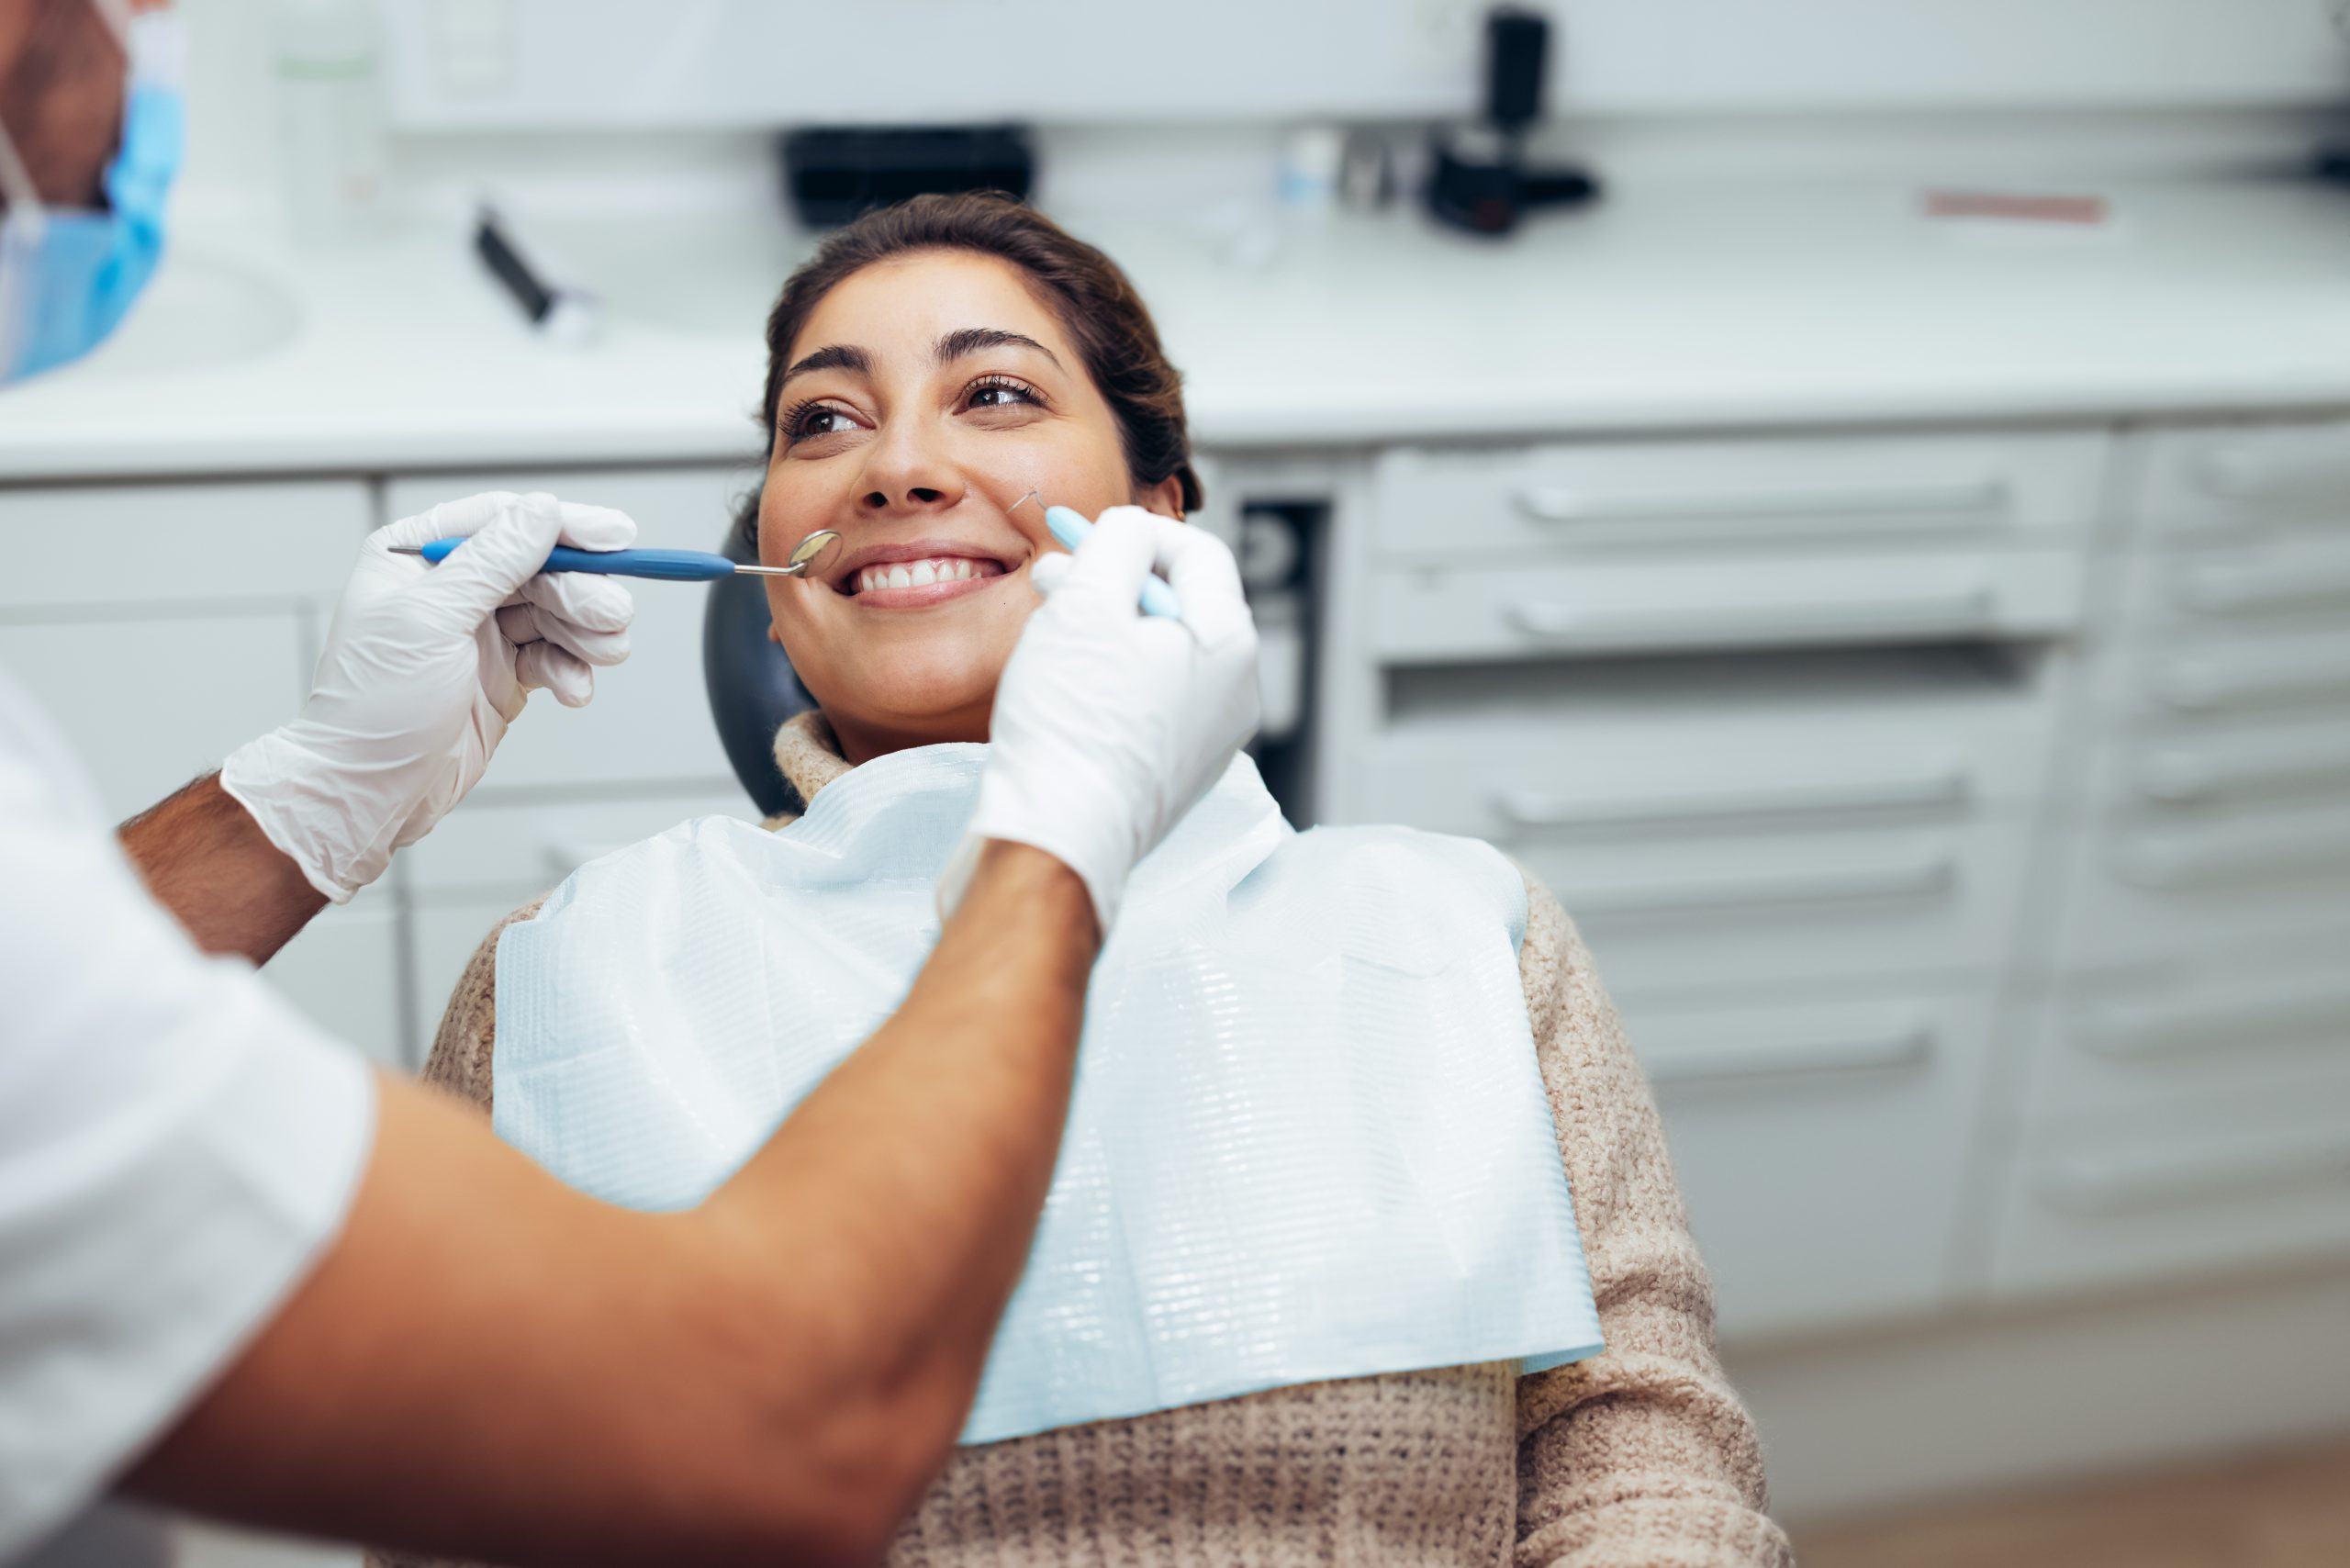 Woman getting a dental treatment at dentistry. Dentist examining the teeth of female patient with tools in clinic.